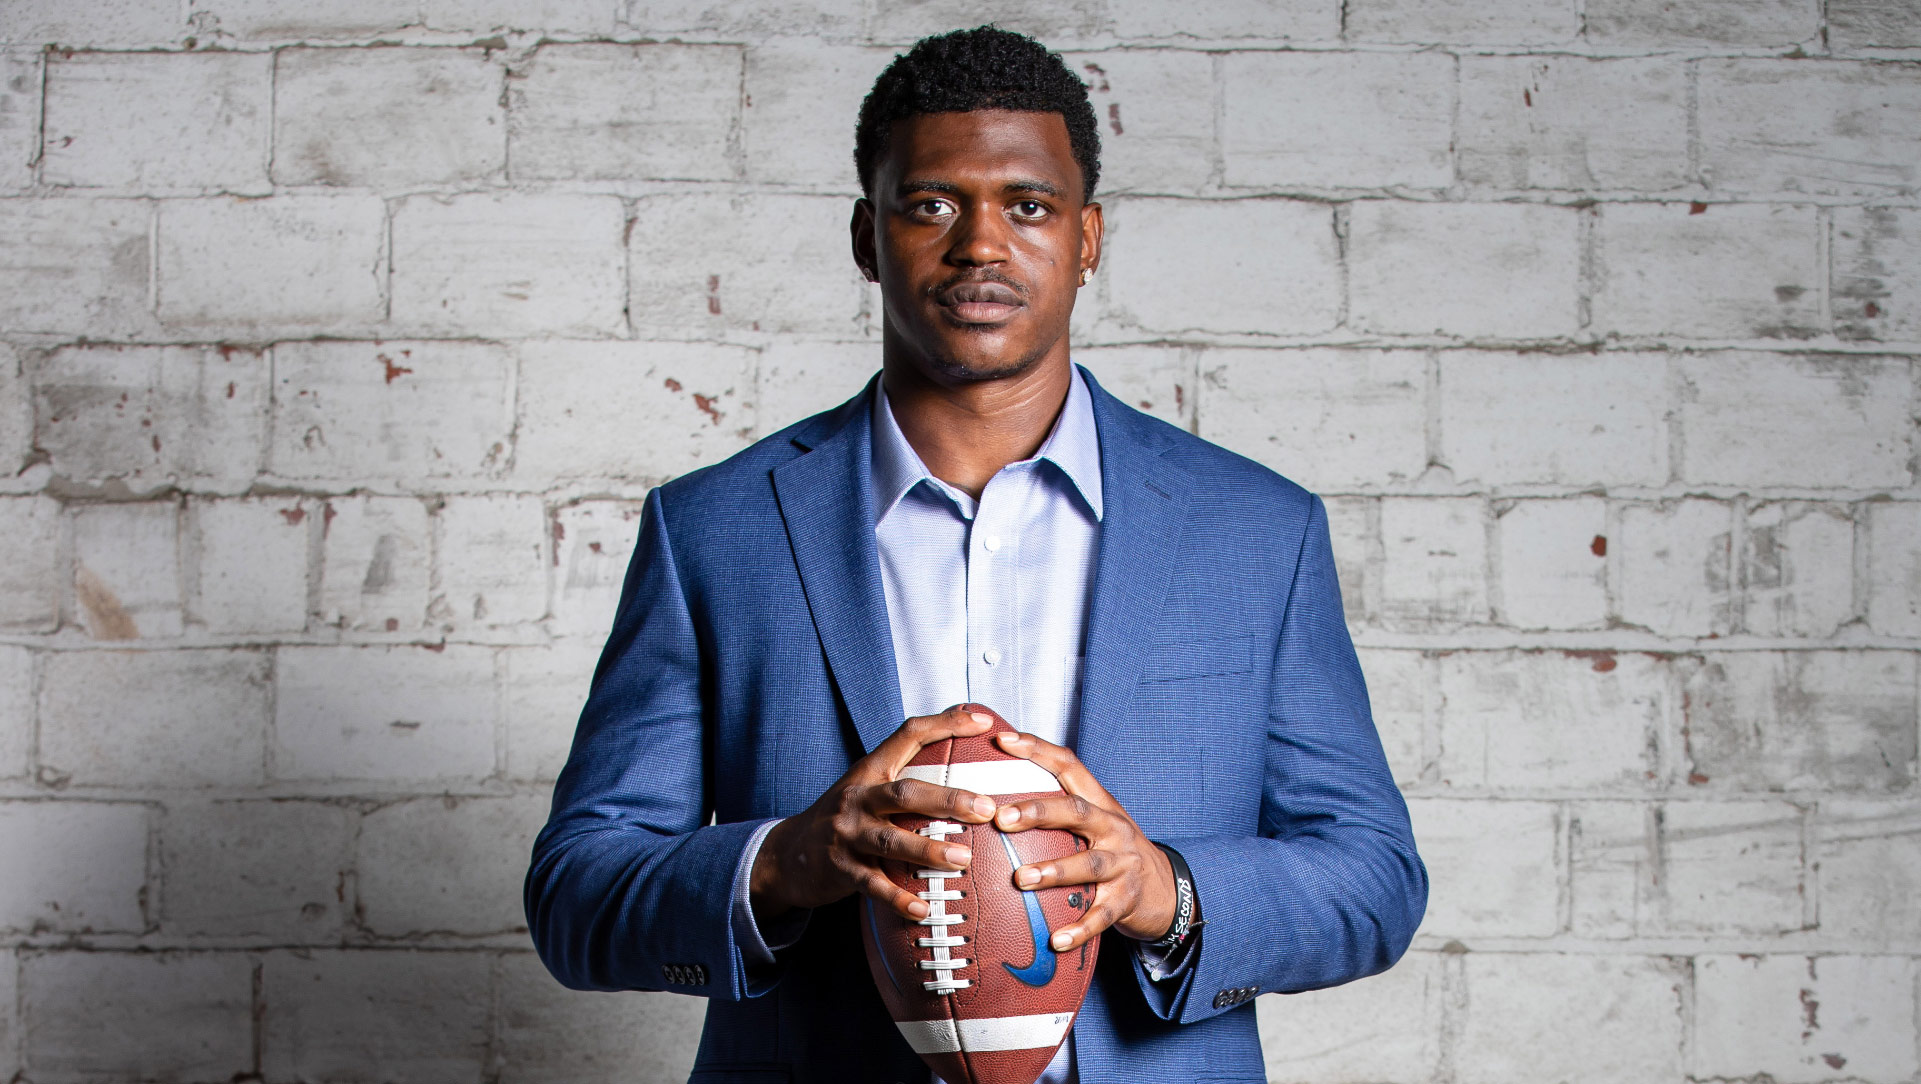 A portrait of Terry, dressed in a blue blazer and light blue button-up shirt, holding a football and looking directly at the camera.